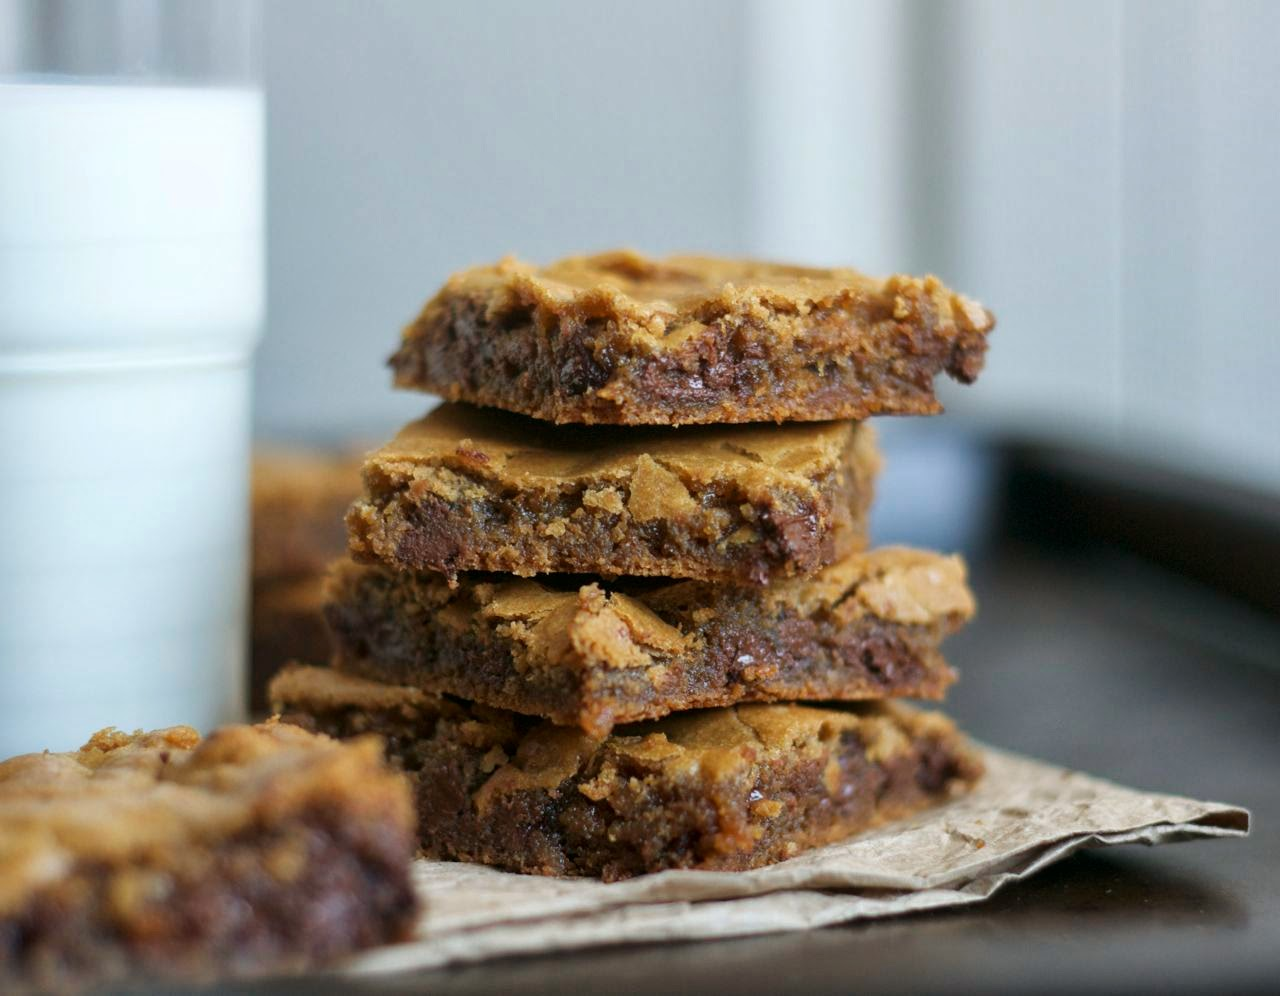 These Butterscotch Chocolate Chip Brownies are ooey, gooey! They're made with dark brown sugar and semi-sweet chocolate chips to make a delicious dessert.